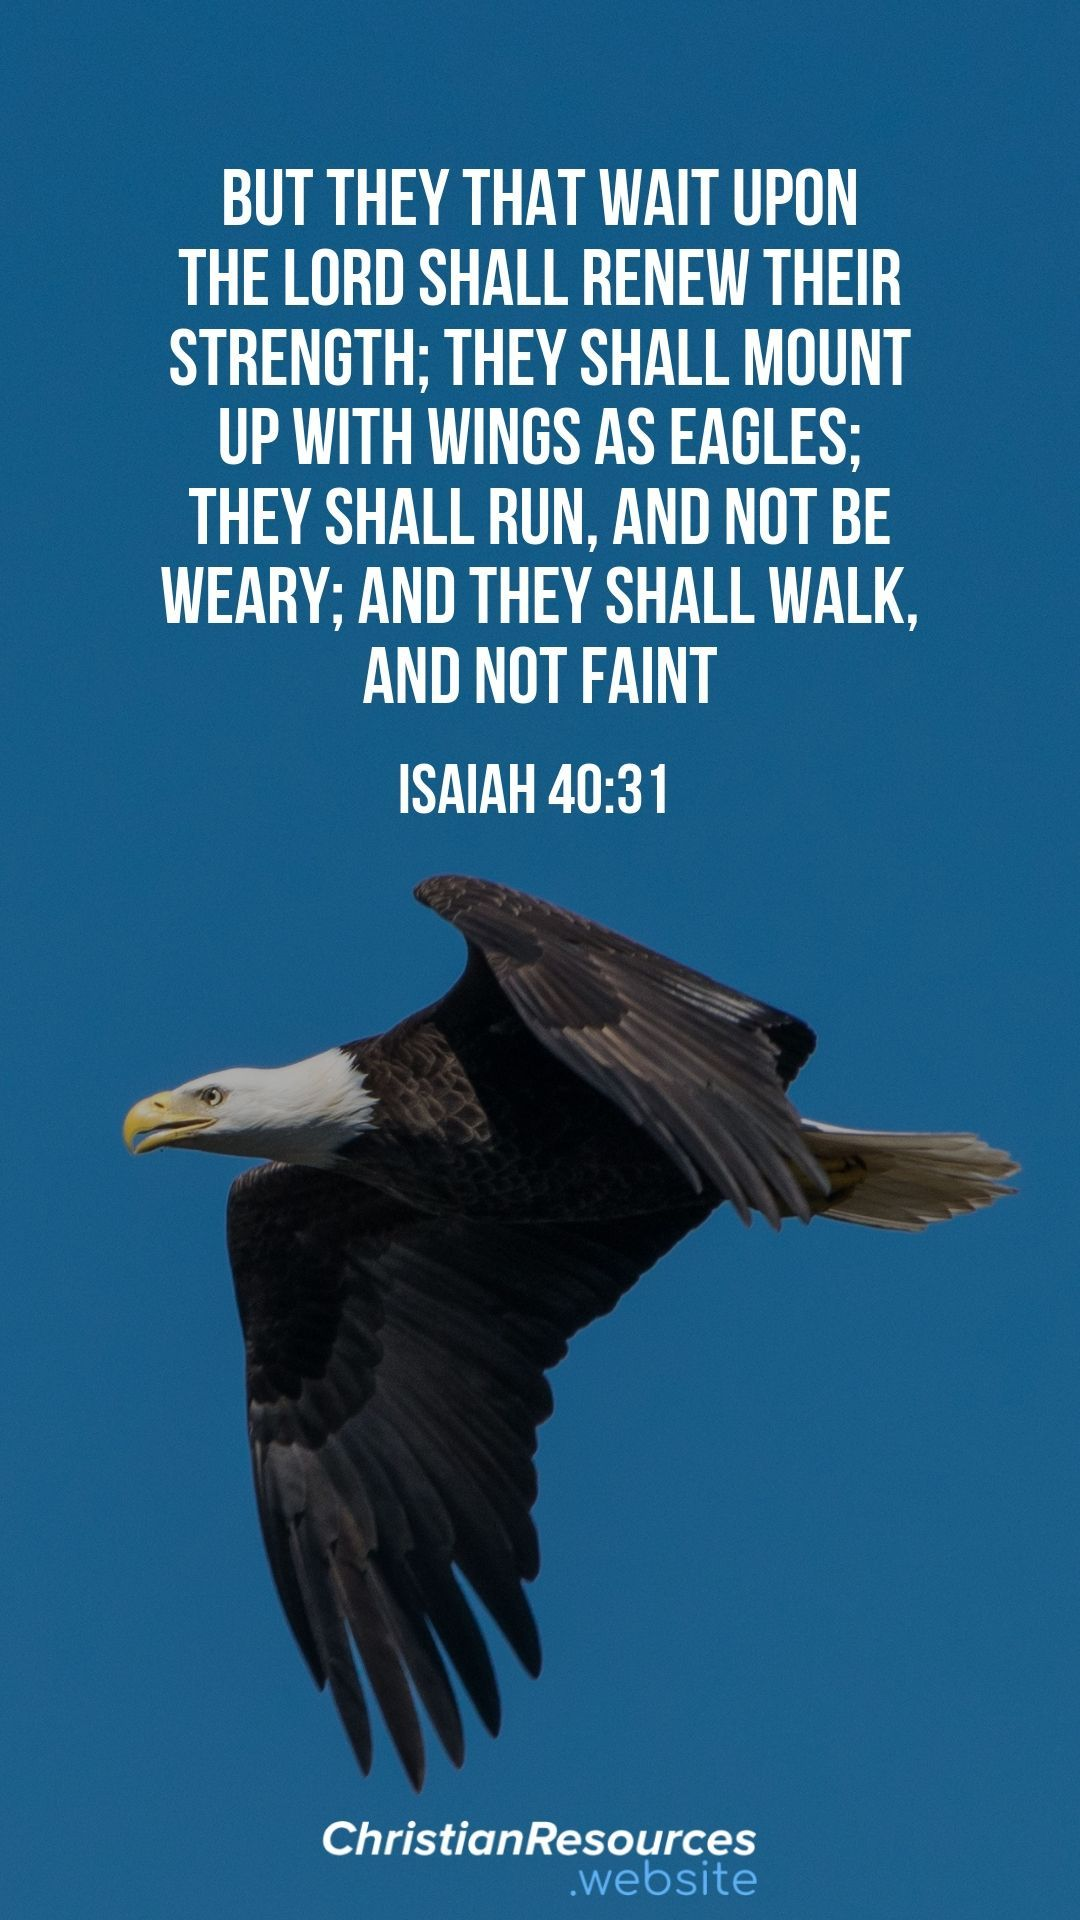 But they that wait upon the Lord shall renew their strength; they shall mount up with wings as eagles; they shall run, and not be weary; and they shall walk, and not faint (Isaiah 40:31). #BibleVerses #BibleQuotes #ScriptureQuotes #GodQuotes #BibleQuotesInspirational #ChristianResources #Bible #Quotes #Encouragement